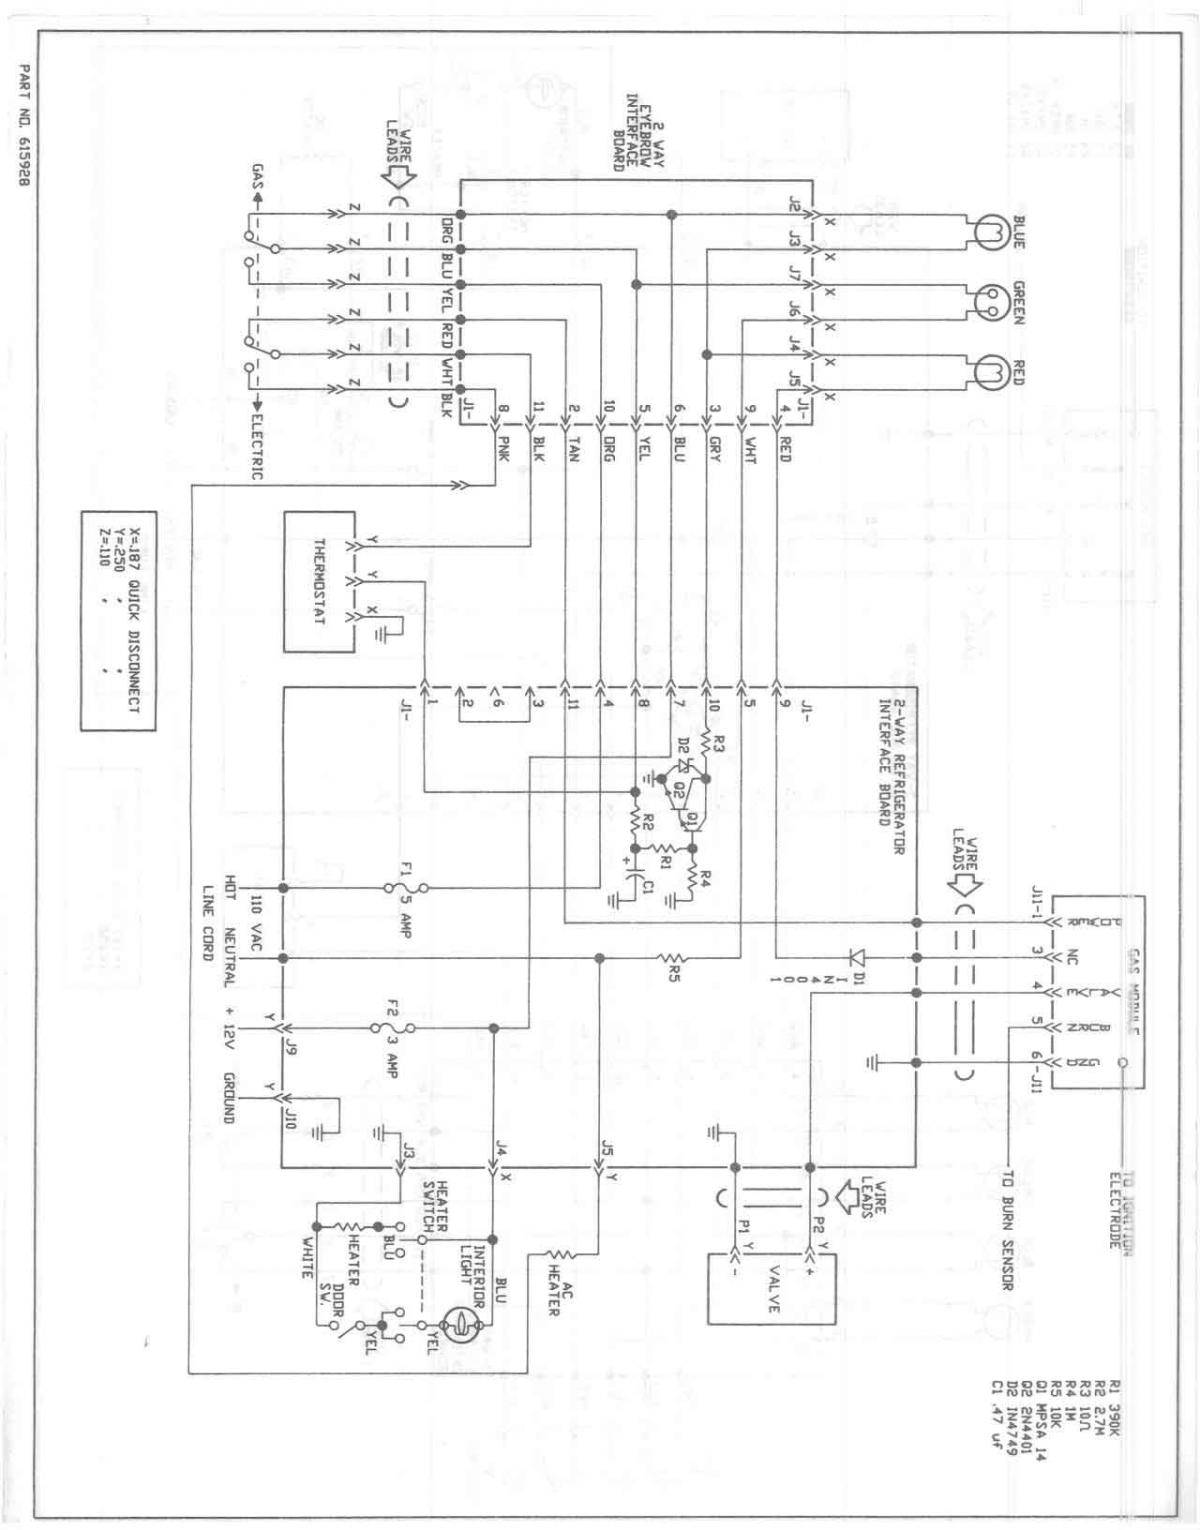 Magic Chef Defrost Timer Wiring Diagram on